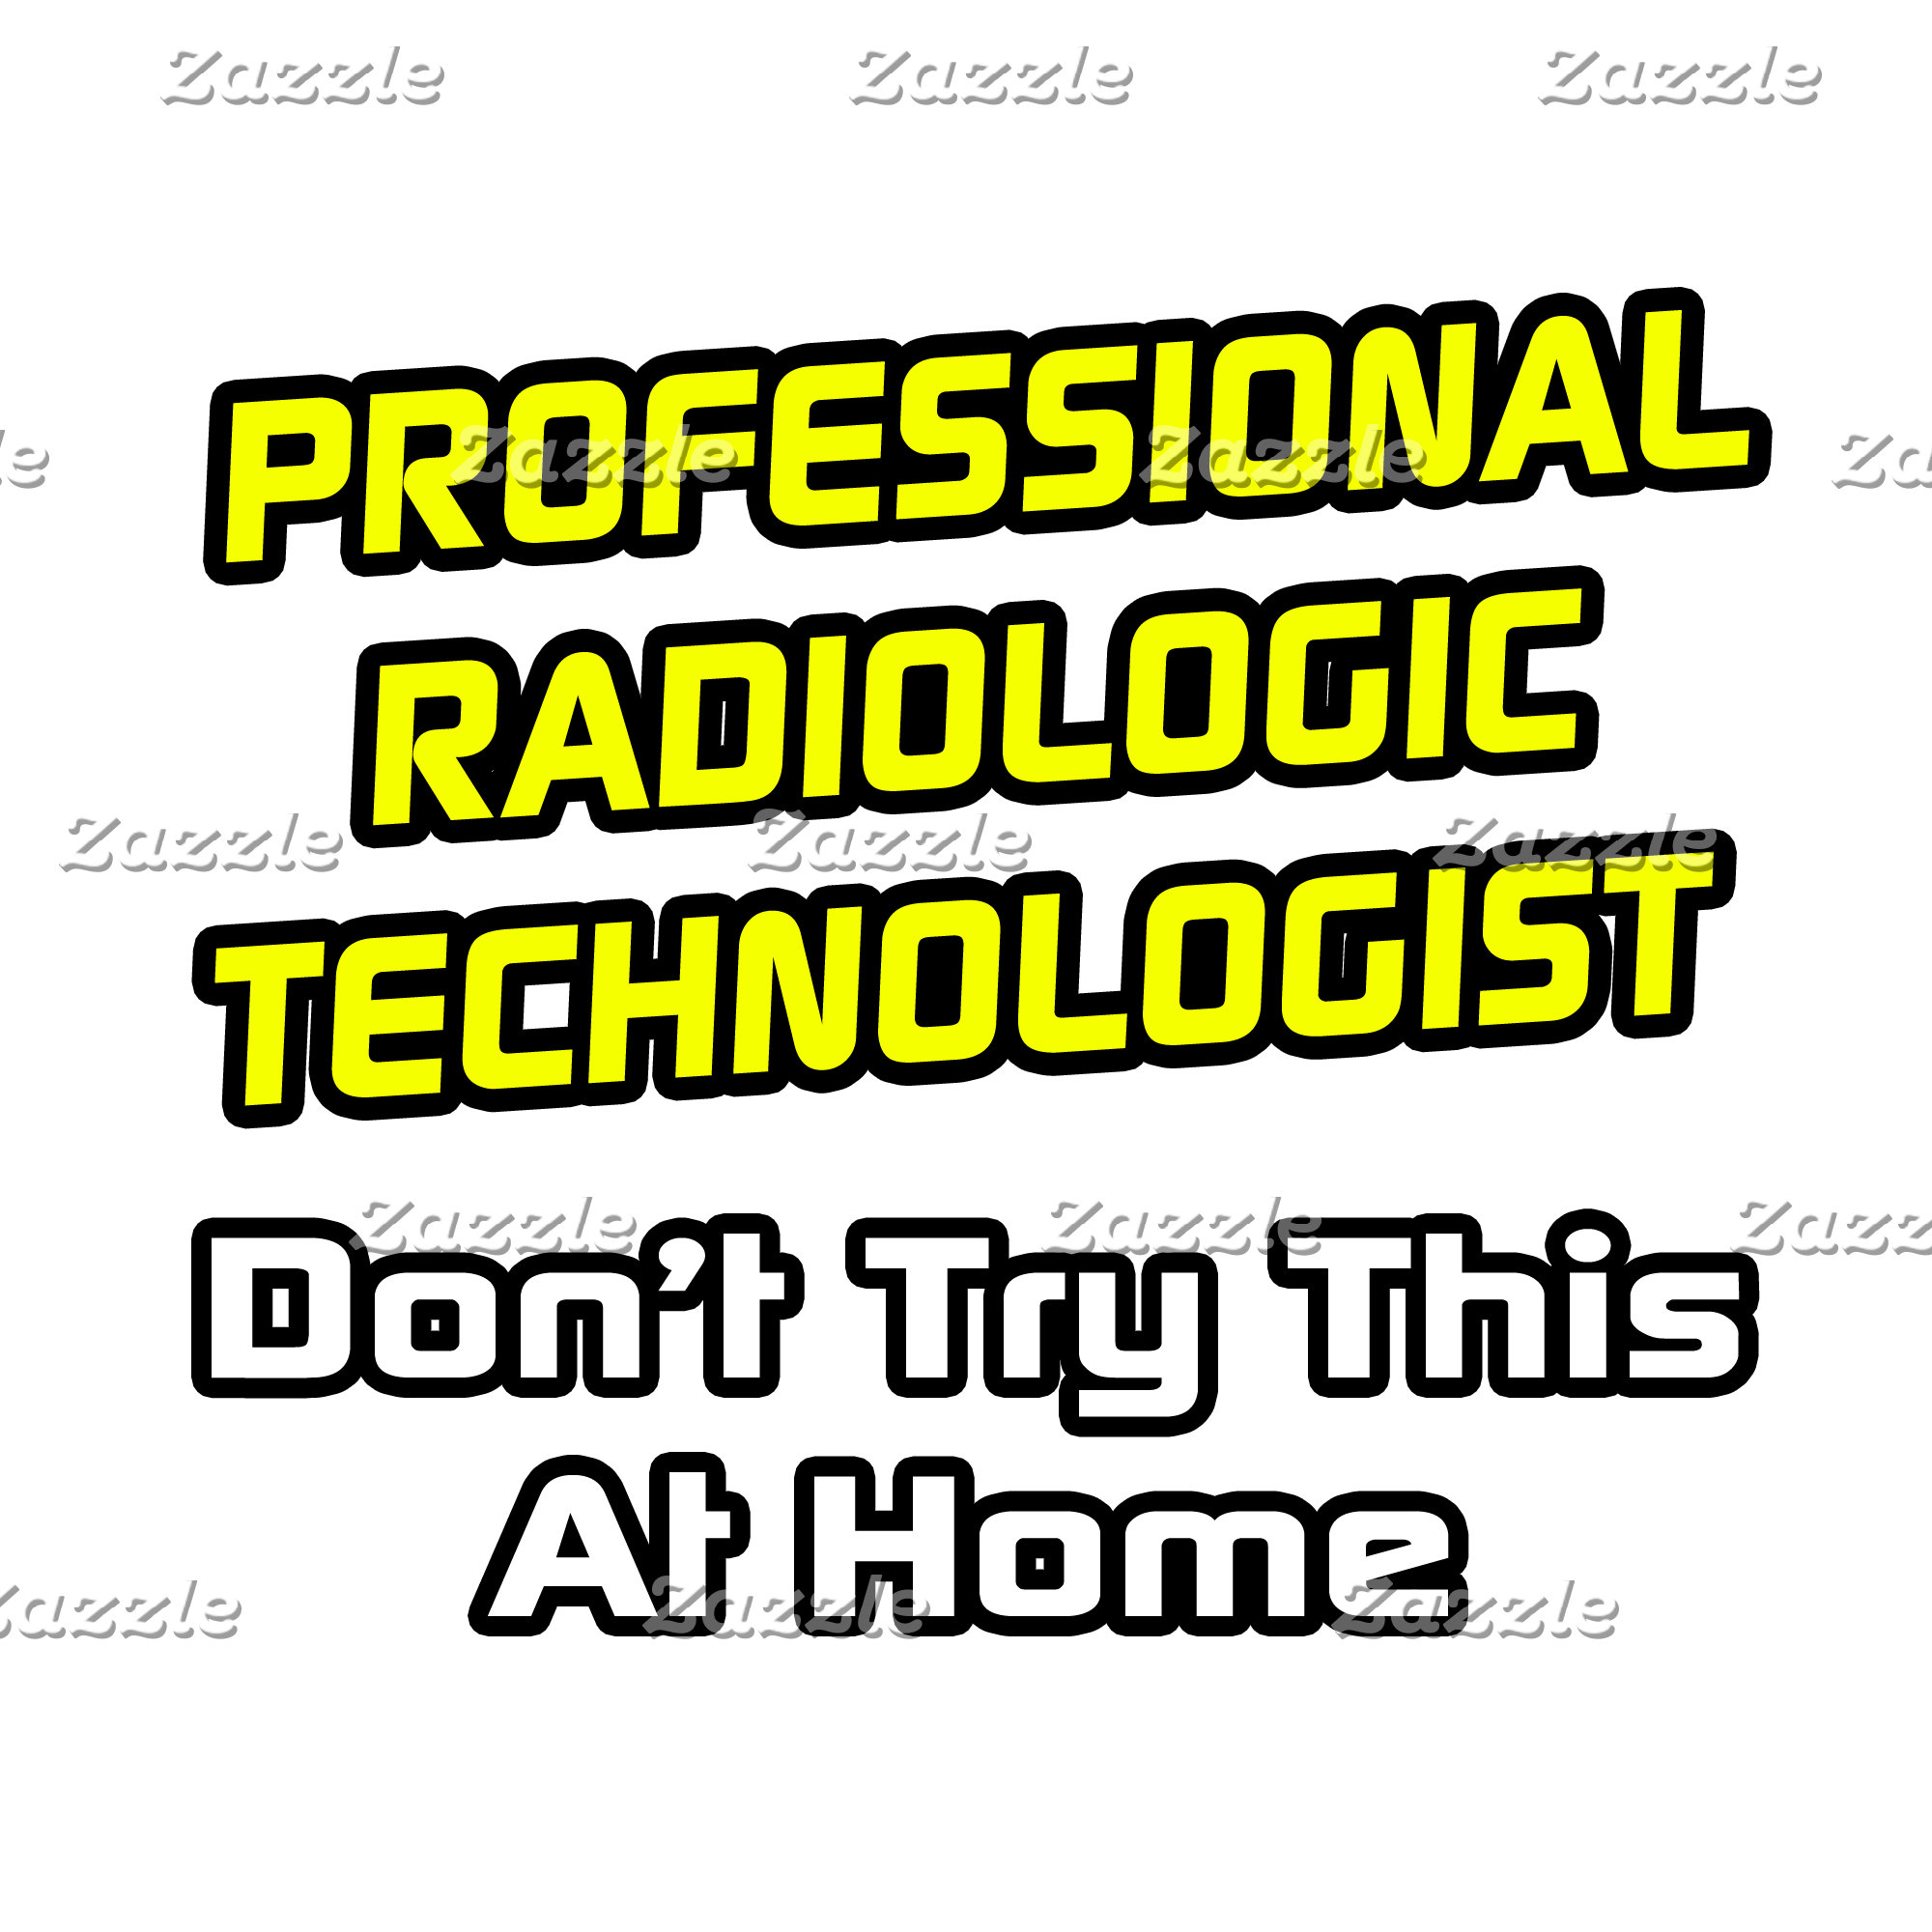 Professional Radiologic Technologist .. Joke